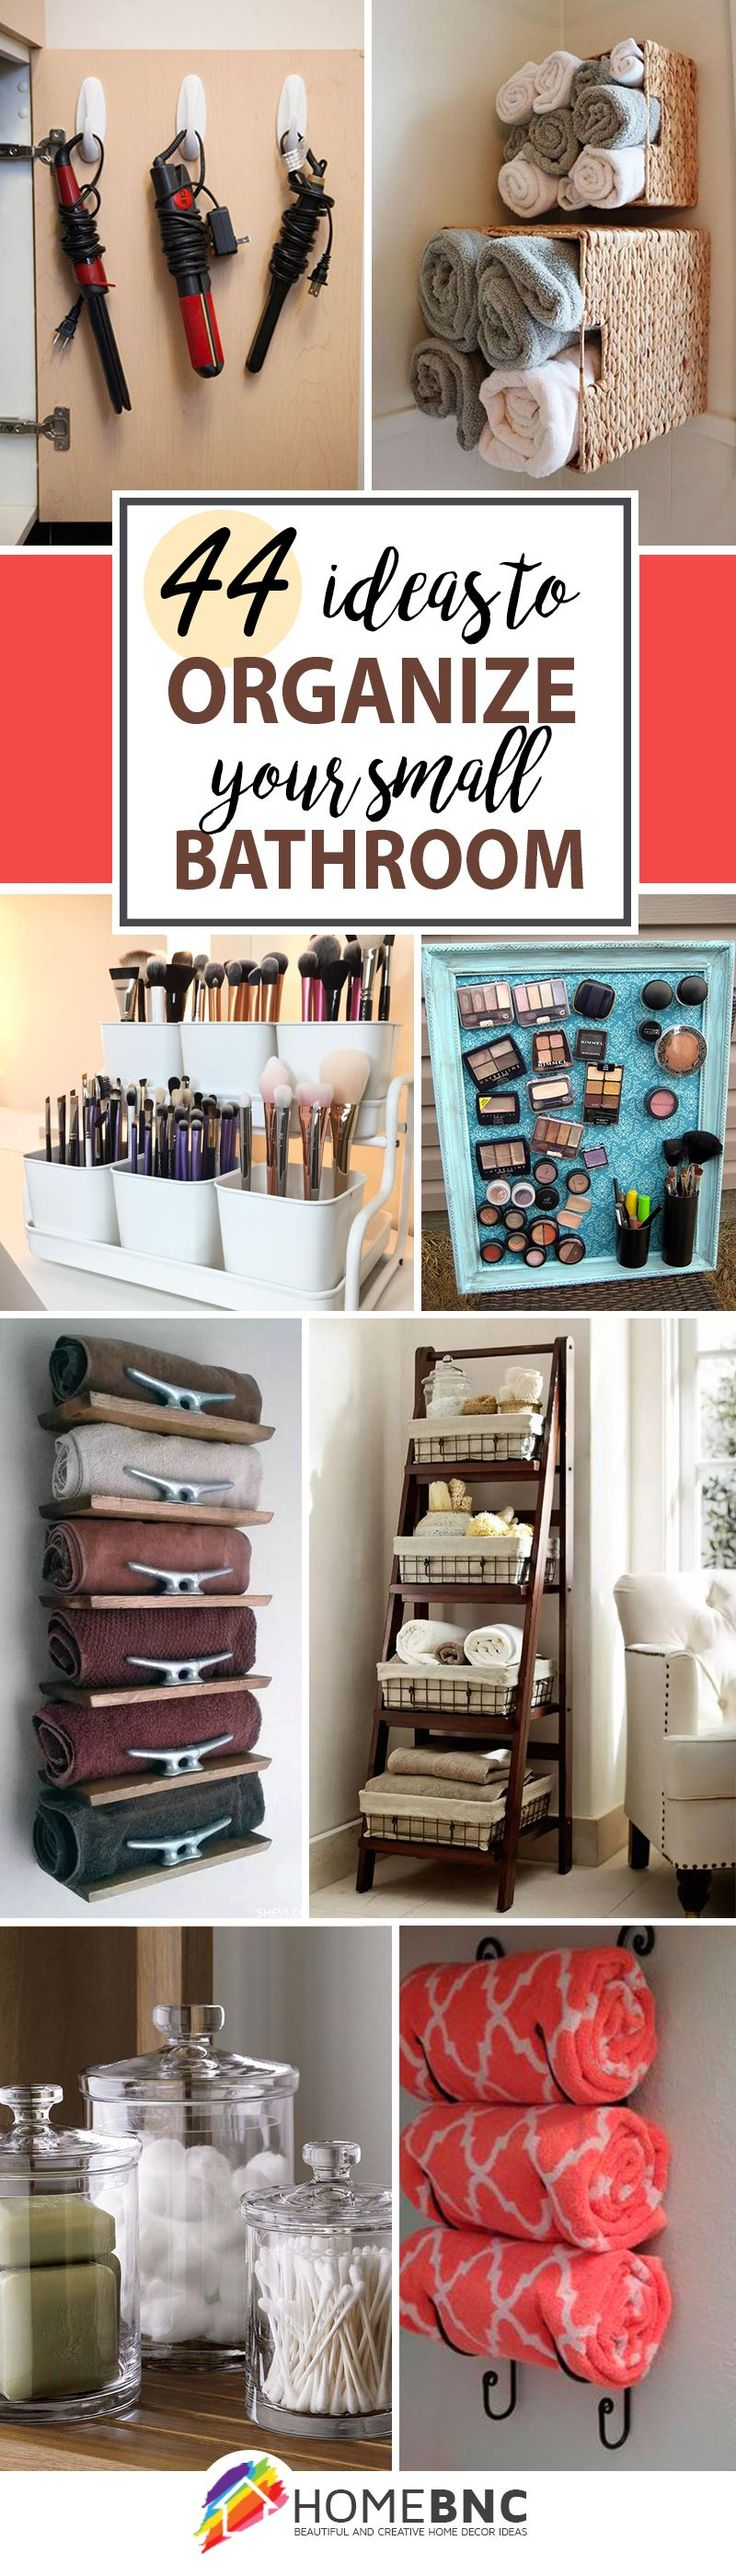 Creative bathroom storage ideas - 17 Best Ideas About Small Bathroom Storage On Pinterest Kids Bathroom Storage Bathroom Storage Diy And Small Bathroom Decorating